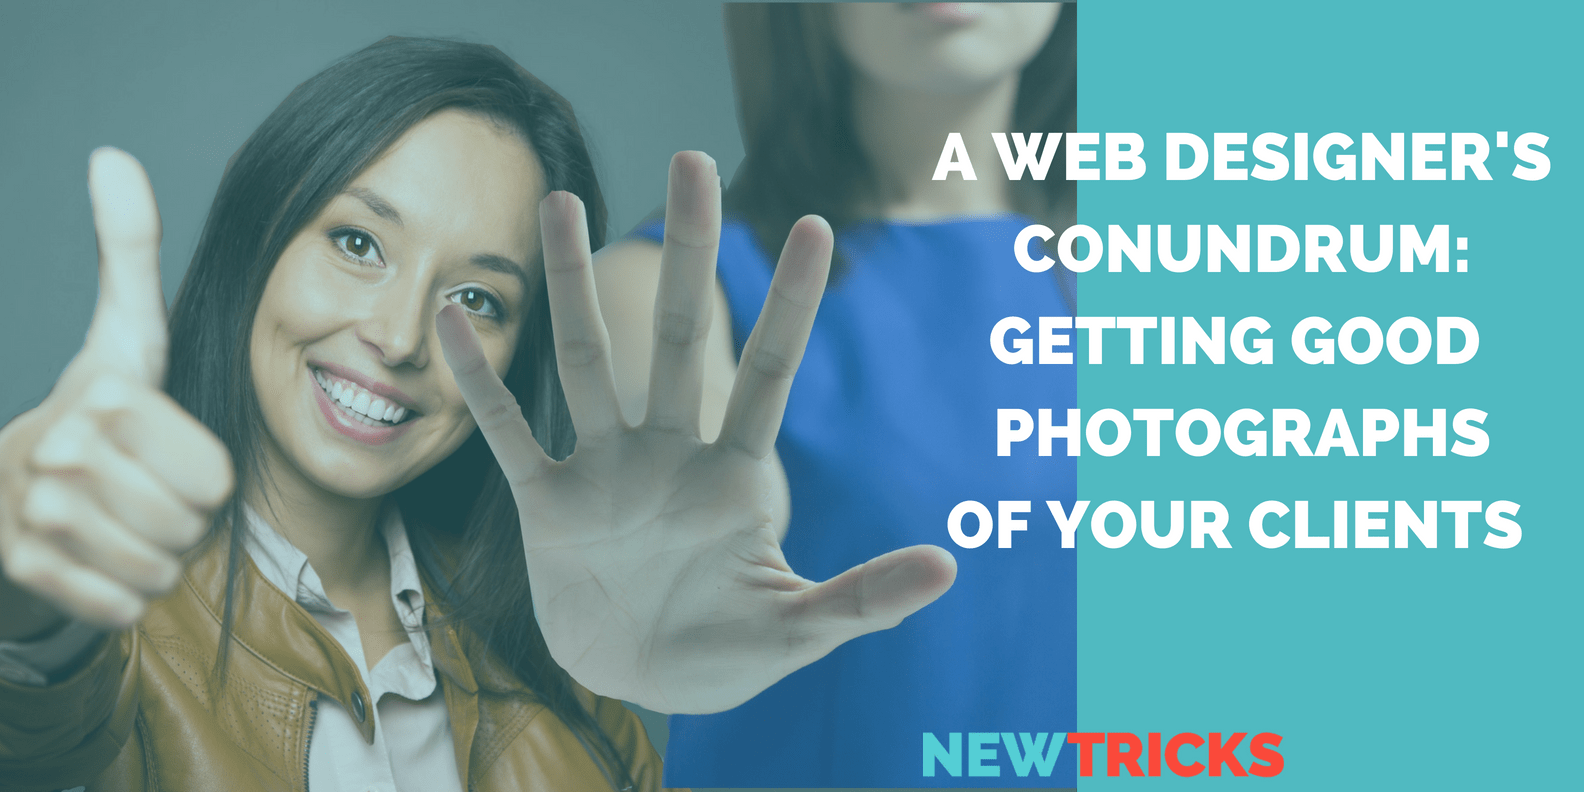 Web Designer's Conundrum. Getting Client Photographs